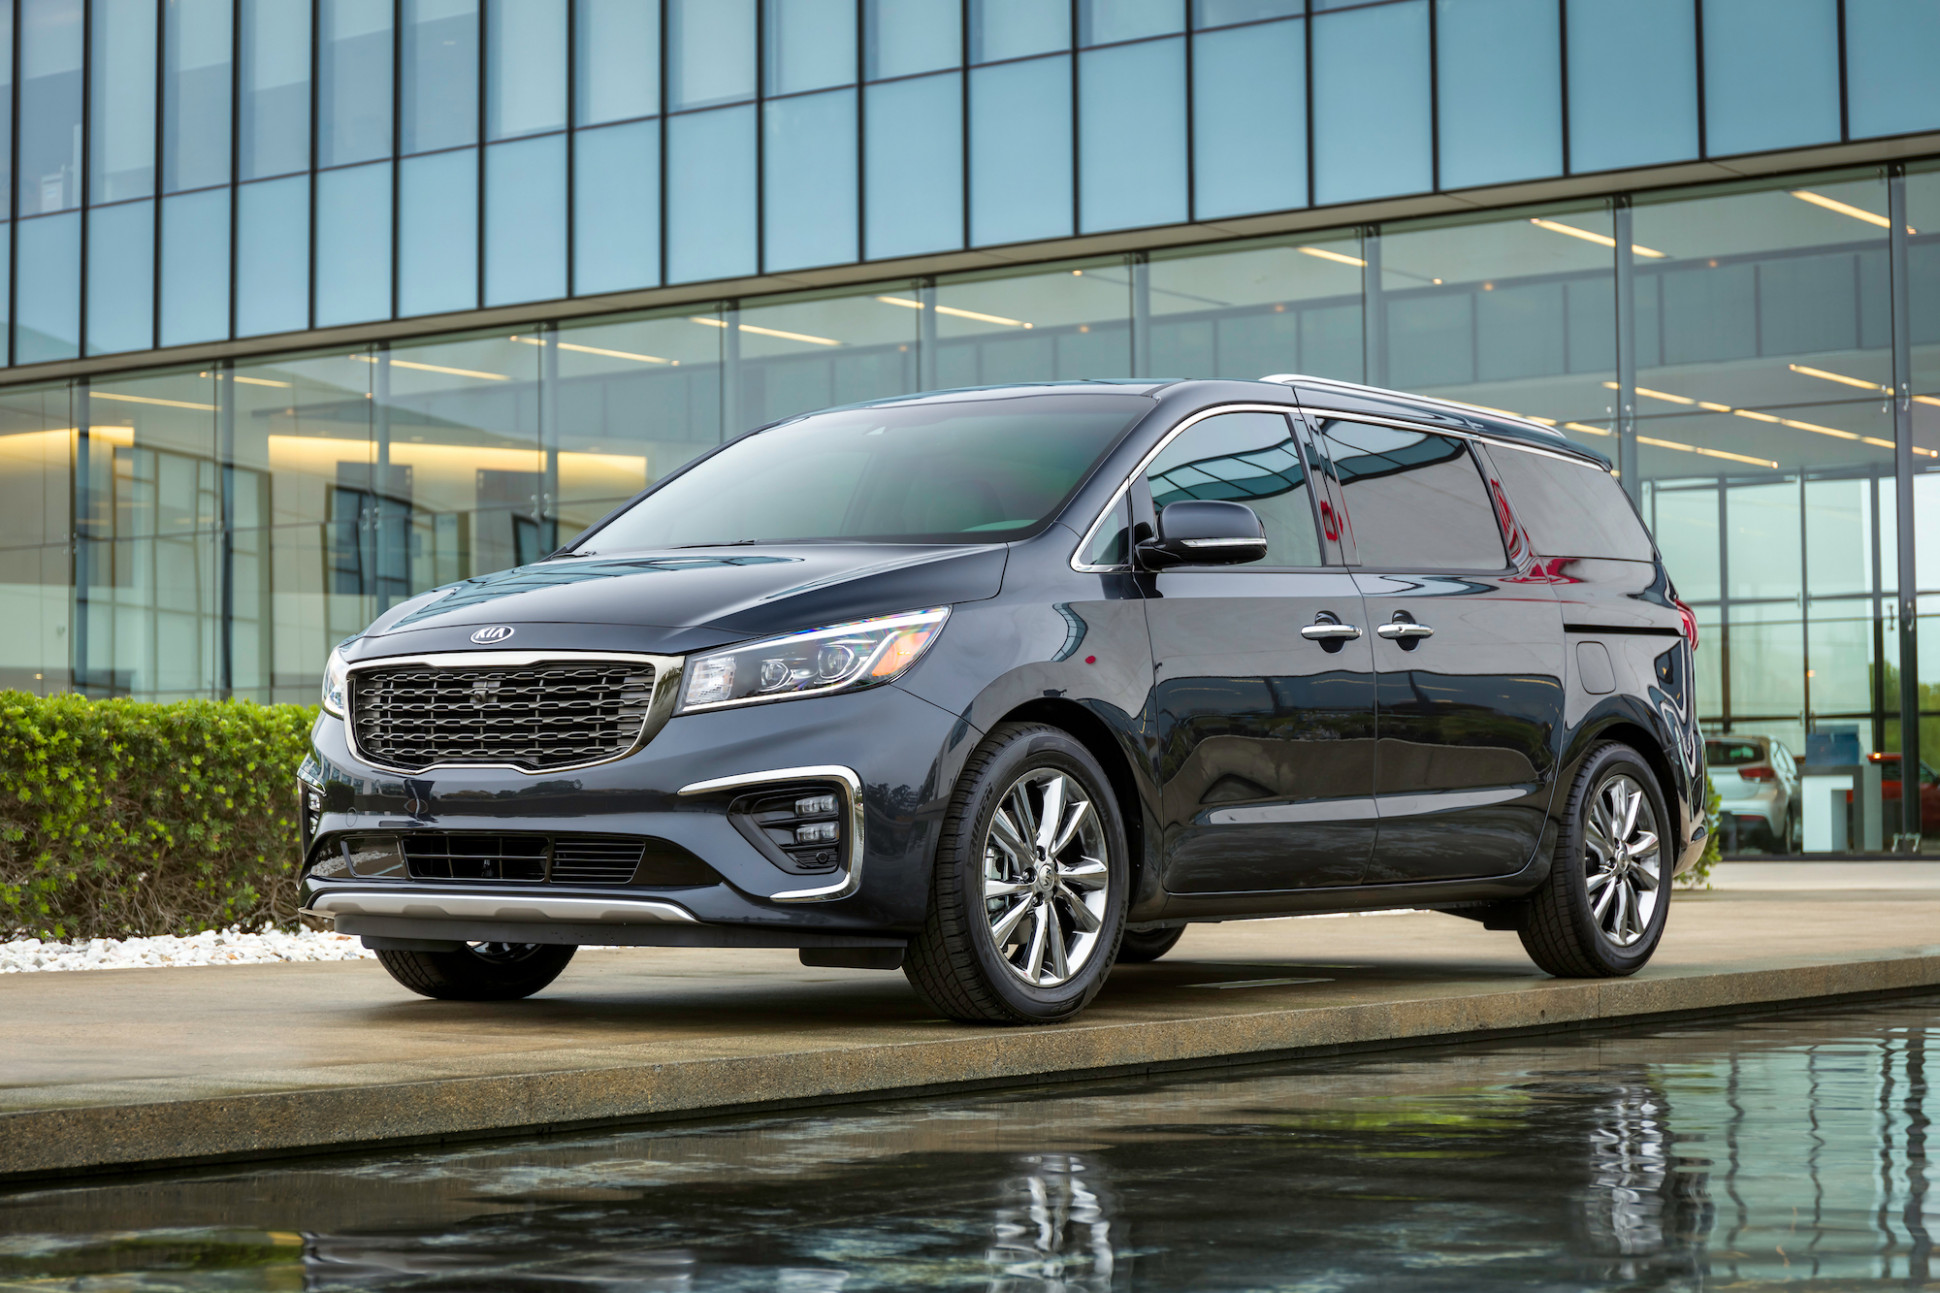 10 Kia Sedona Review, Ratings, Specs, Prices, and Photos - The ...